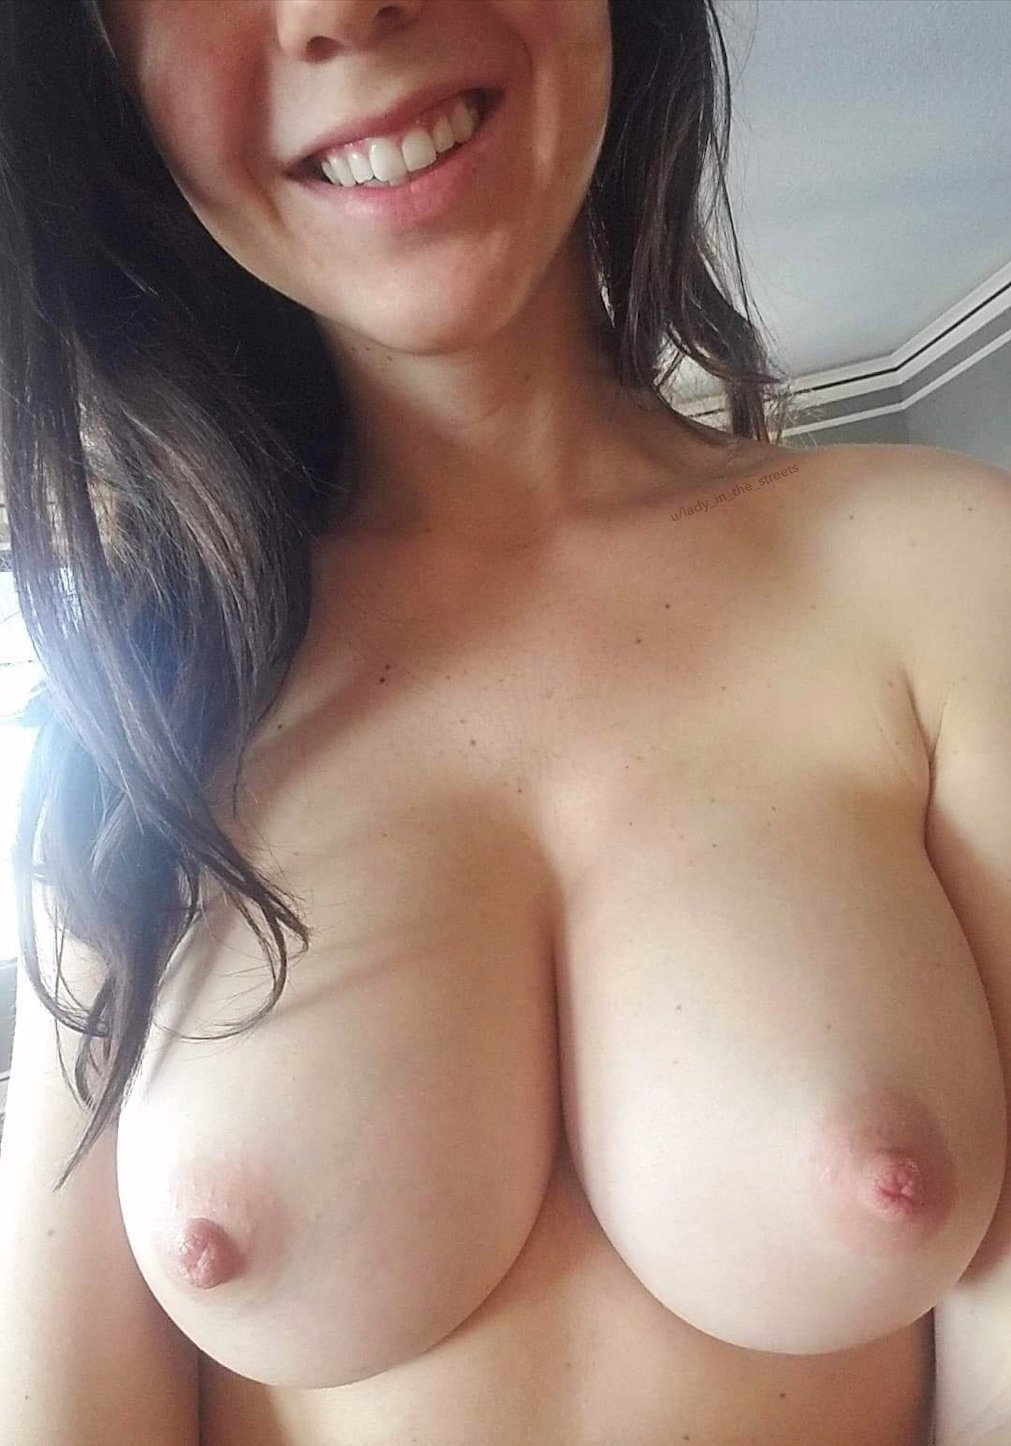 Lady In The Streets Lady In The Streets Onlyfans Nude Leaks 0036